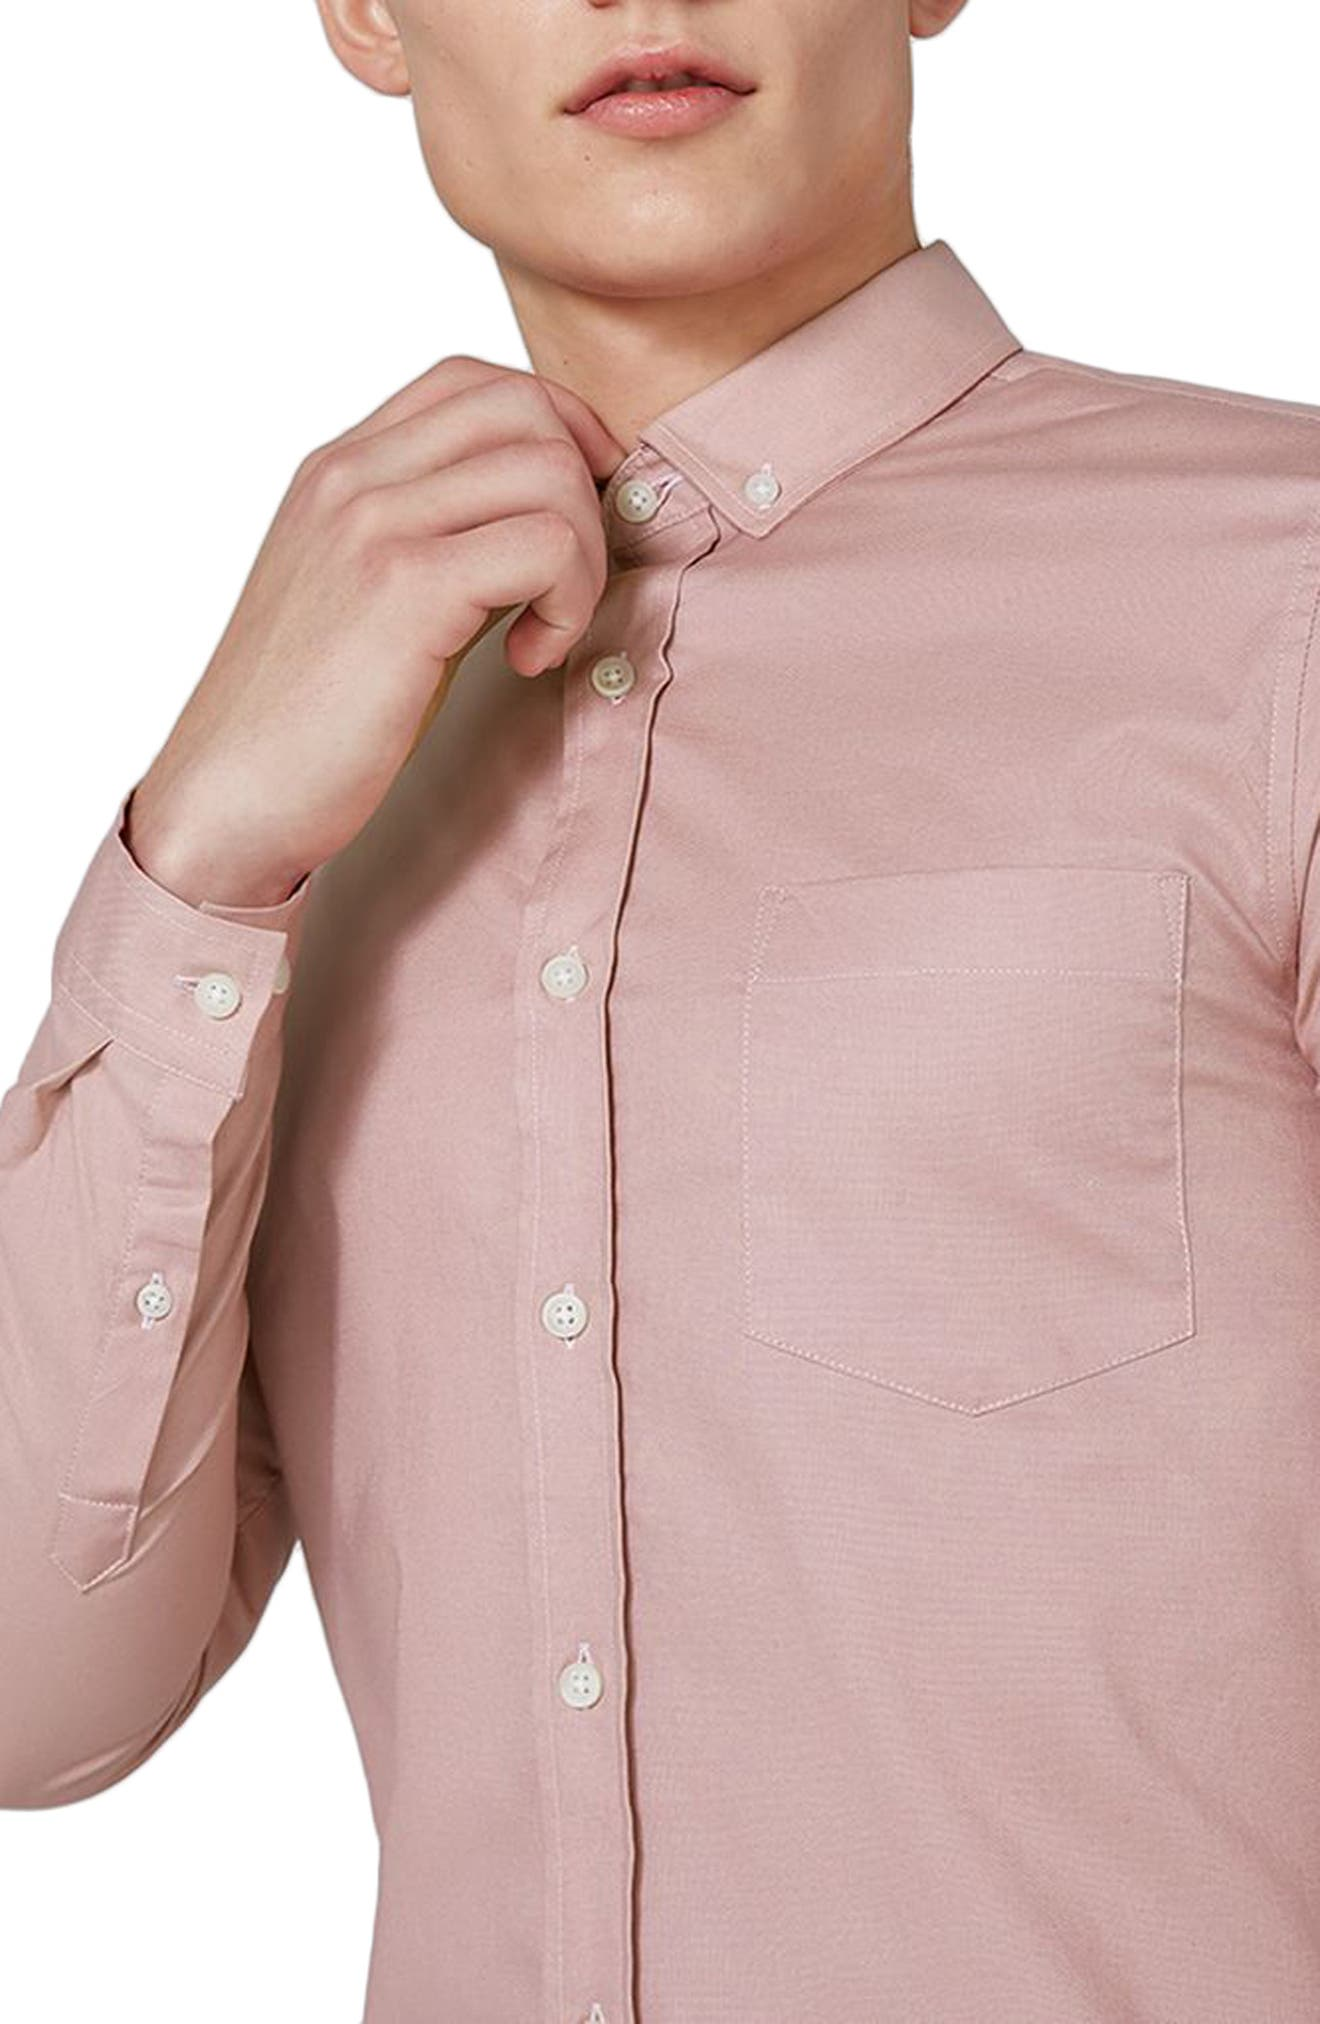 Muscle Fit Oxford Shirt,                             Alternate thumbnail 11, color,